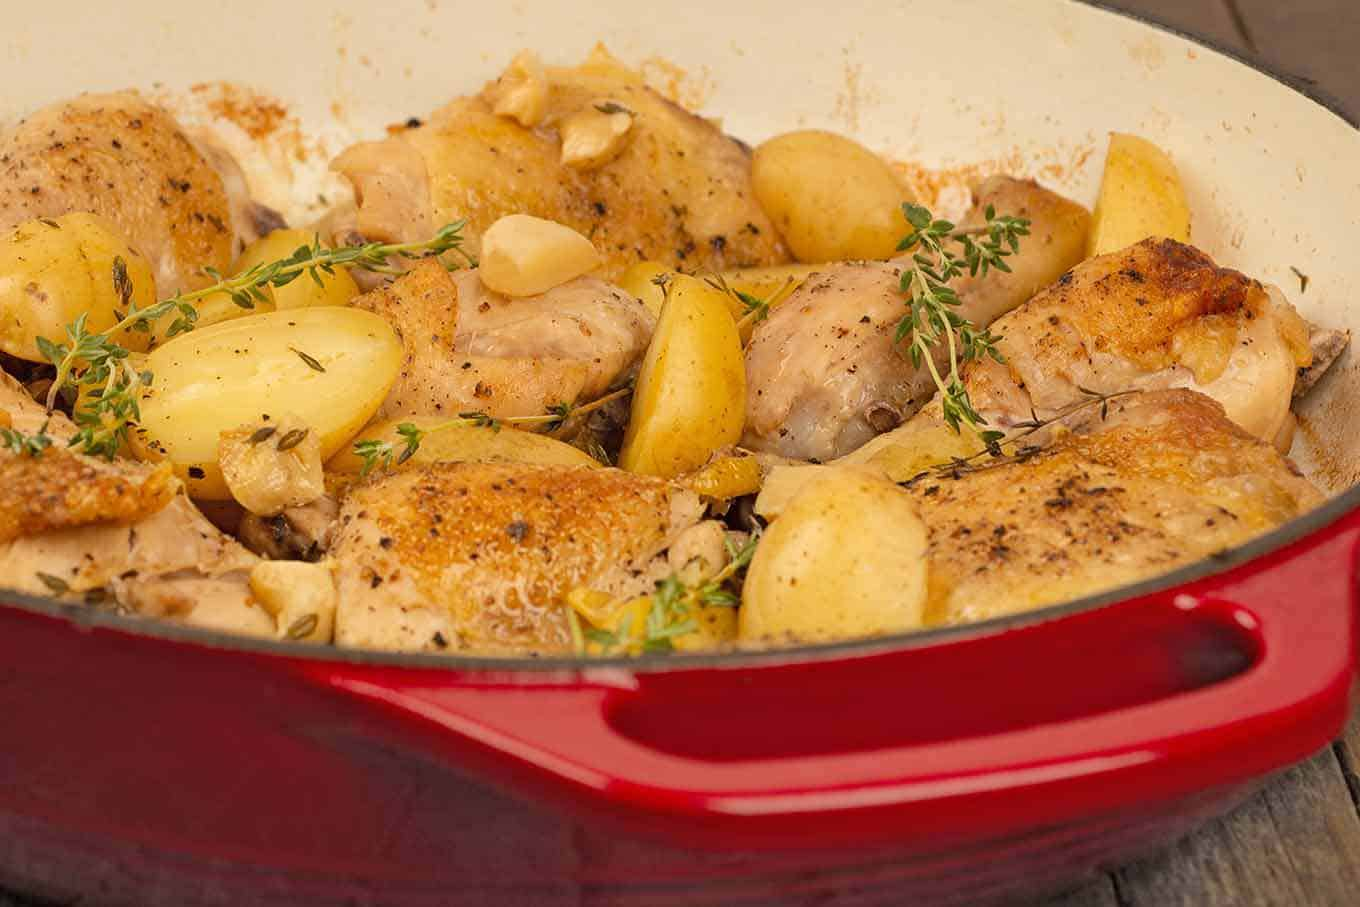 Side view of a red enameled cast iron pan filled with roasted chicken, whole garlic cloves, halved baby potatoes, and thyme.